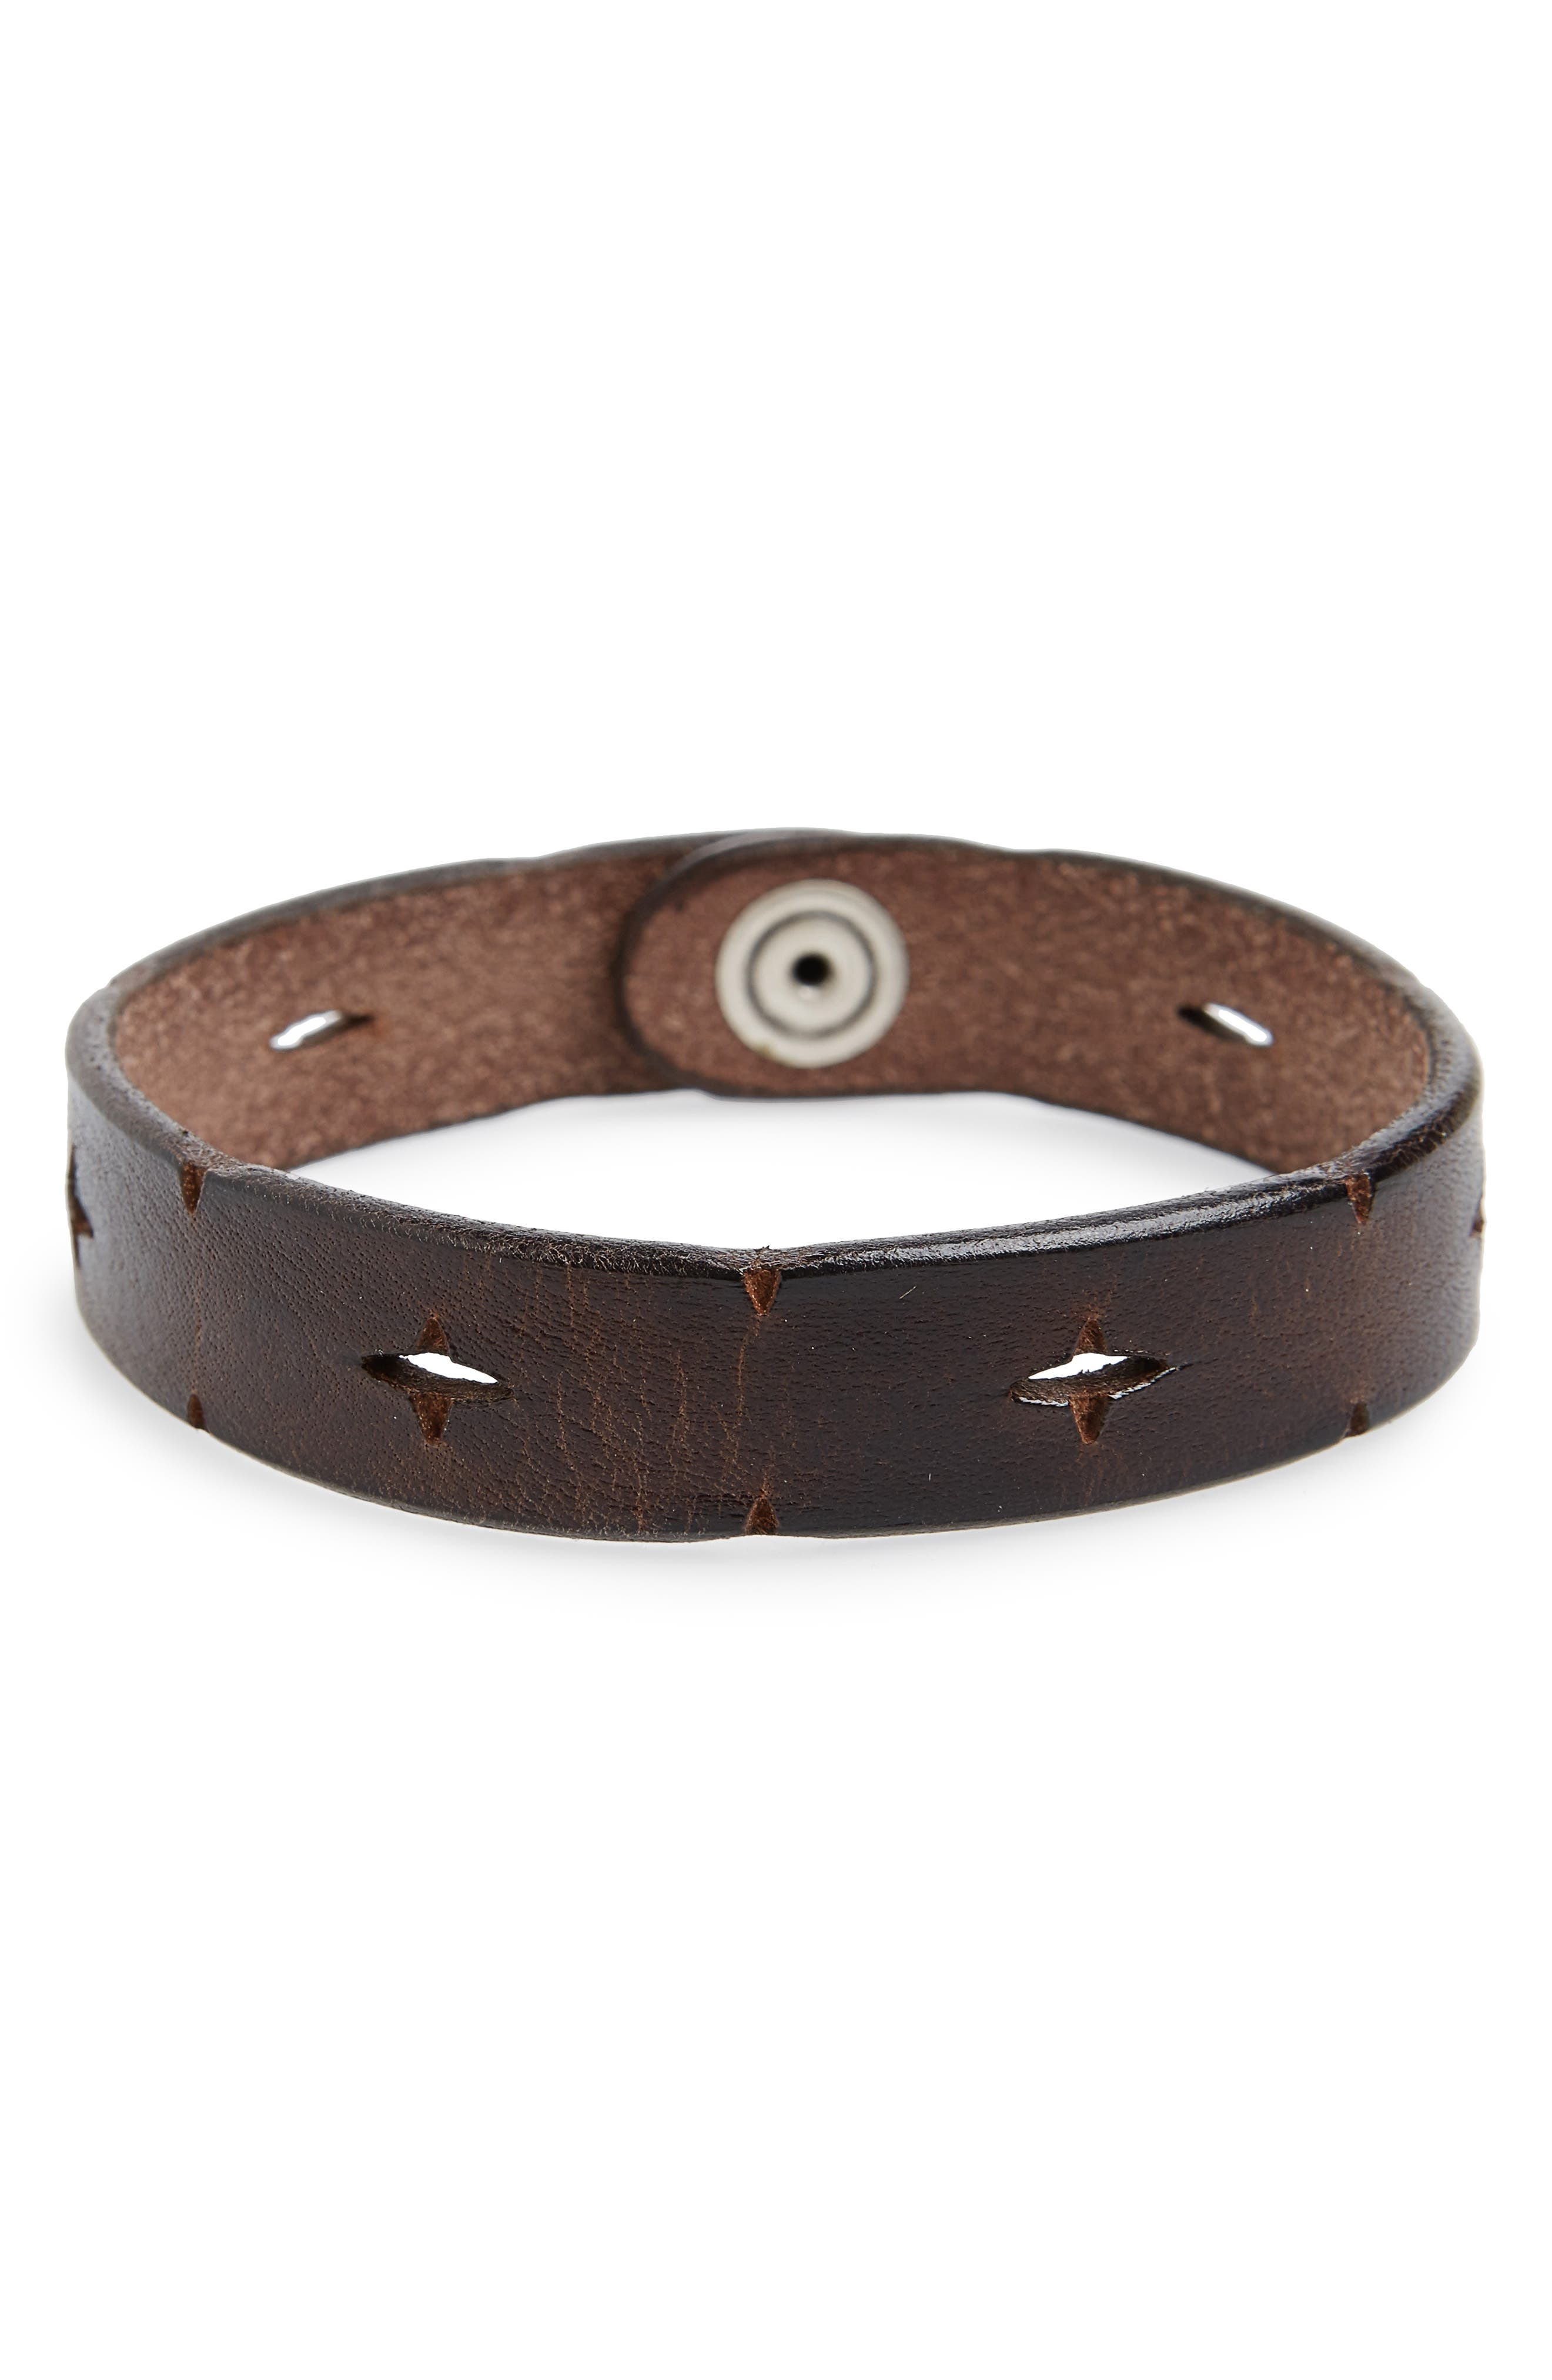 Wax Leather Bracelet,                         Main,                         color, T. Moro